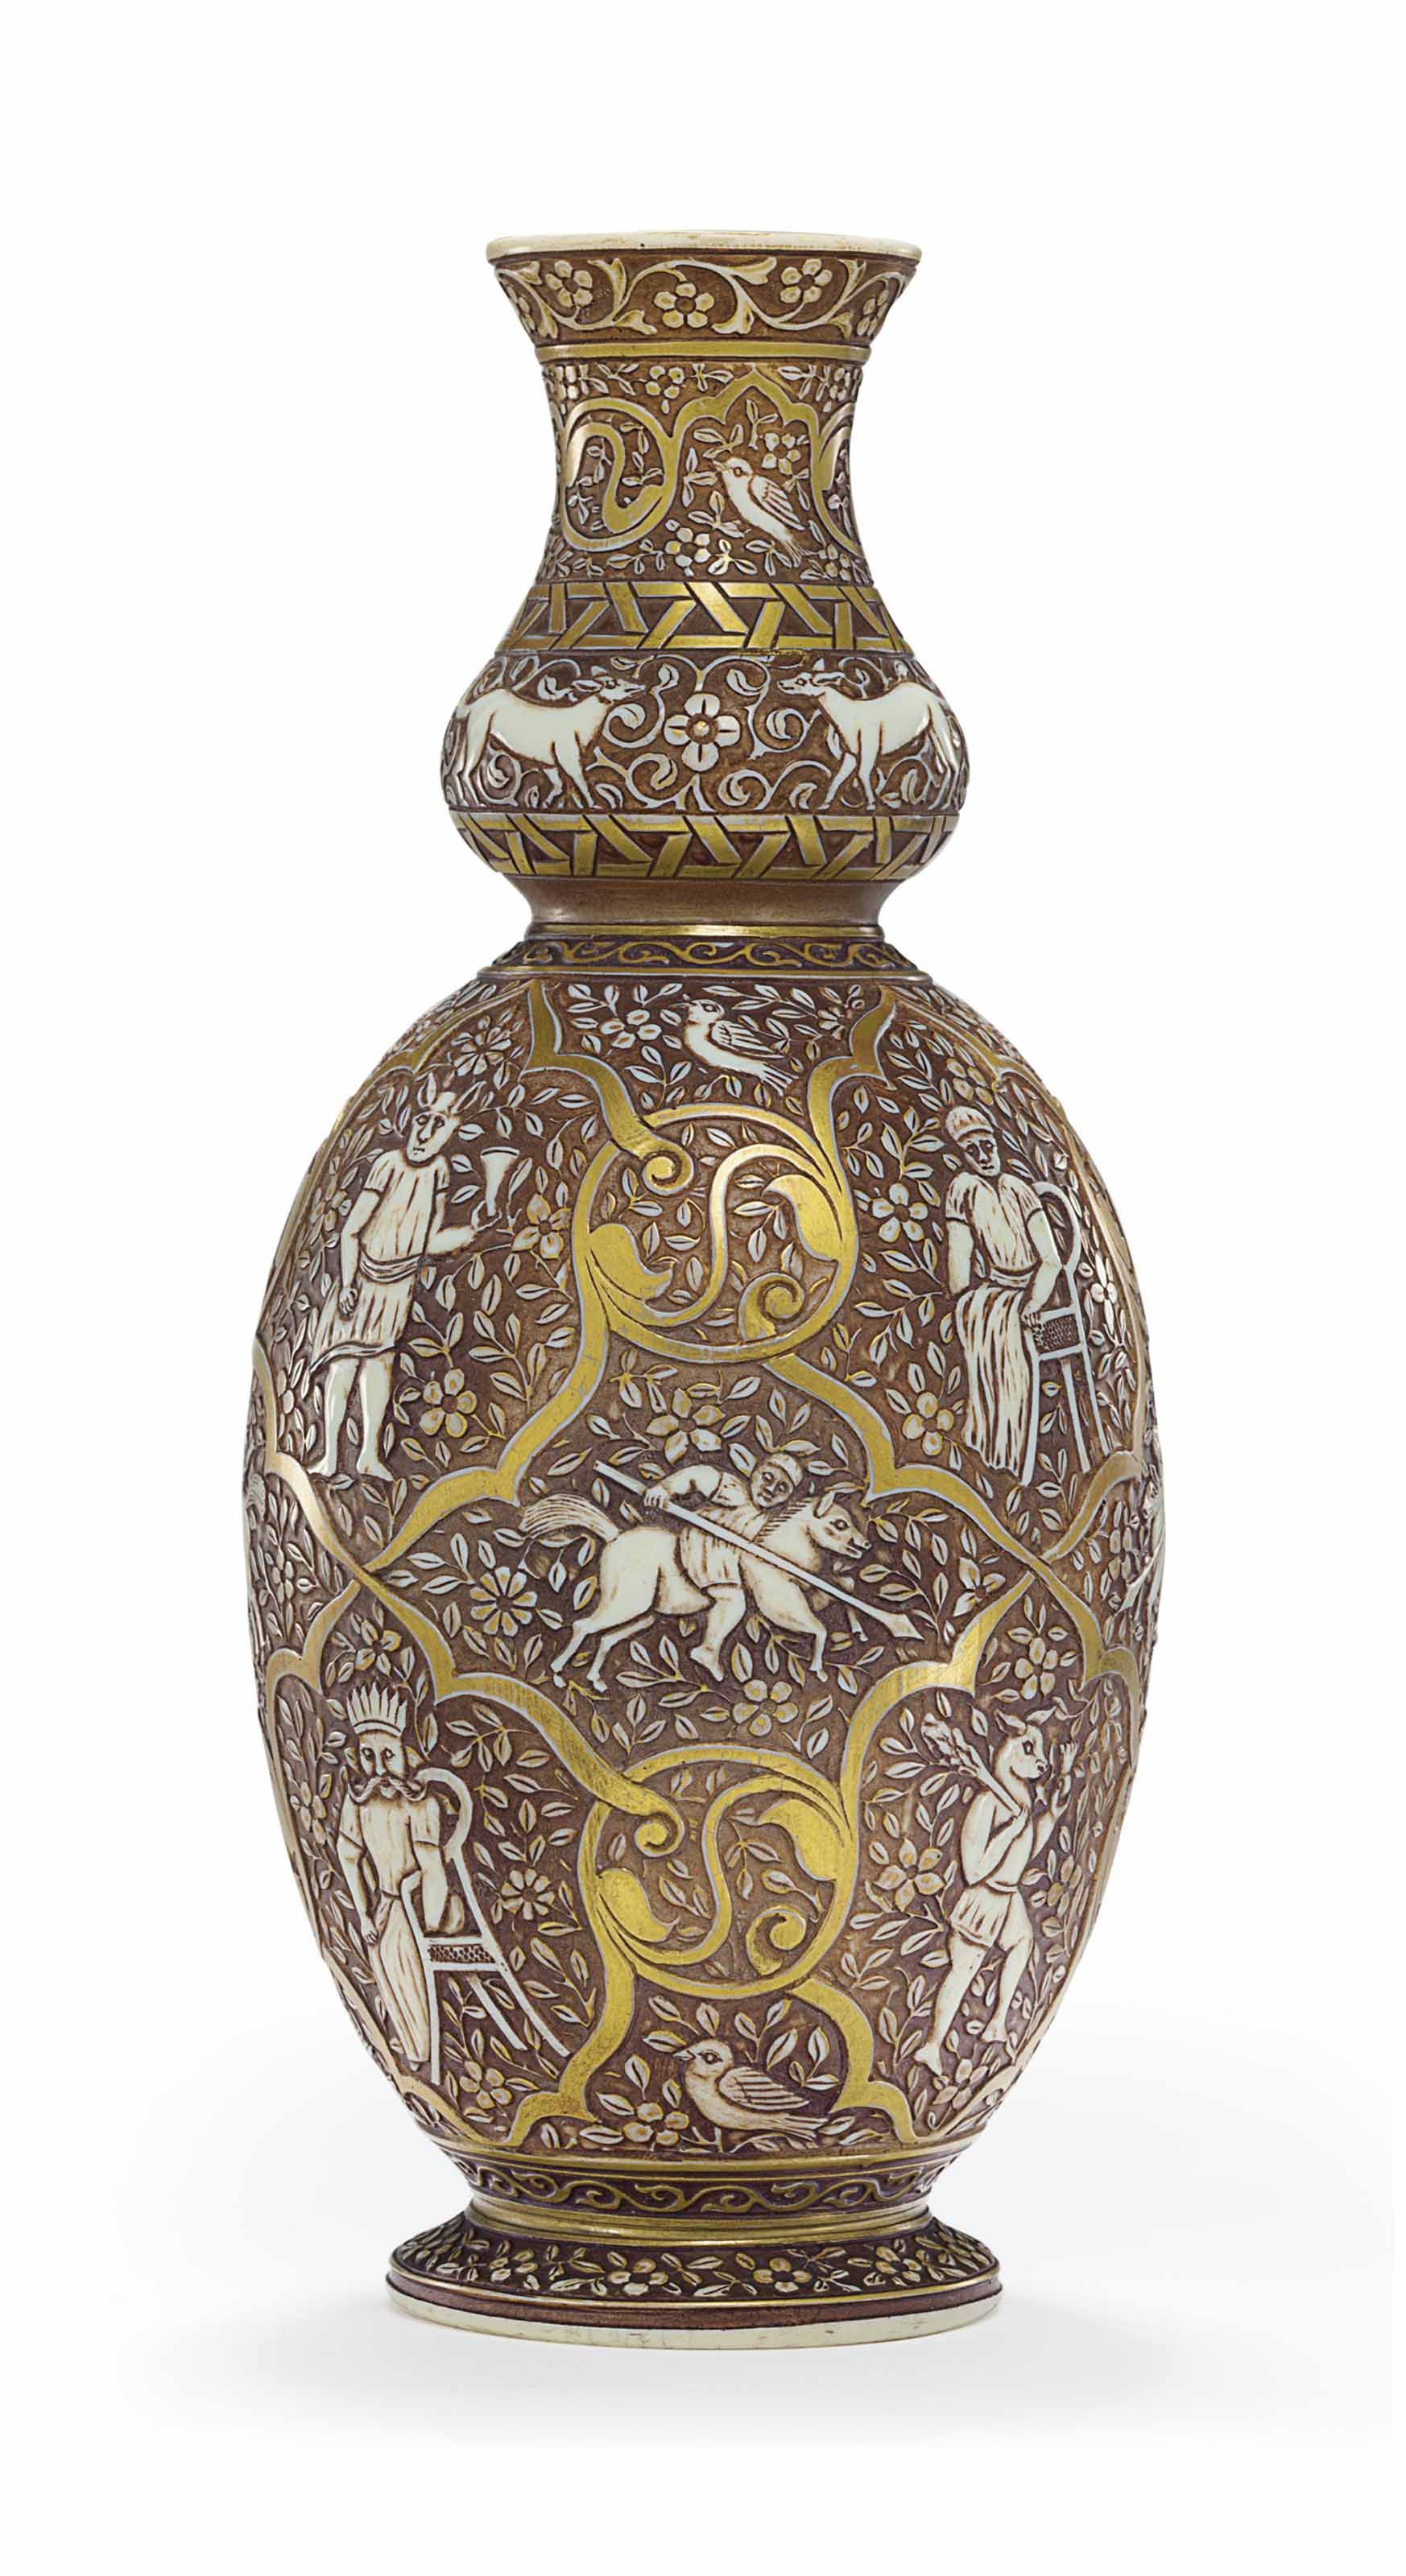 A THOMAS WEBB & SONS CAMEO GLASS VASE